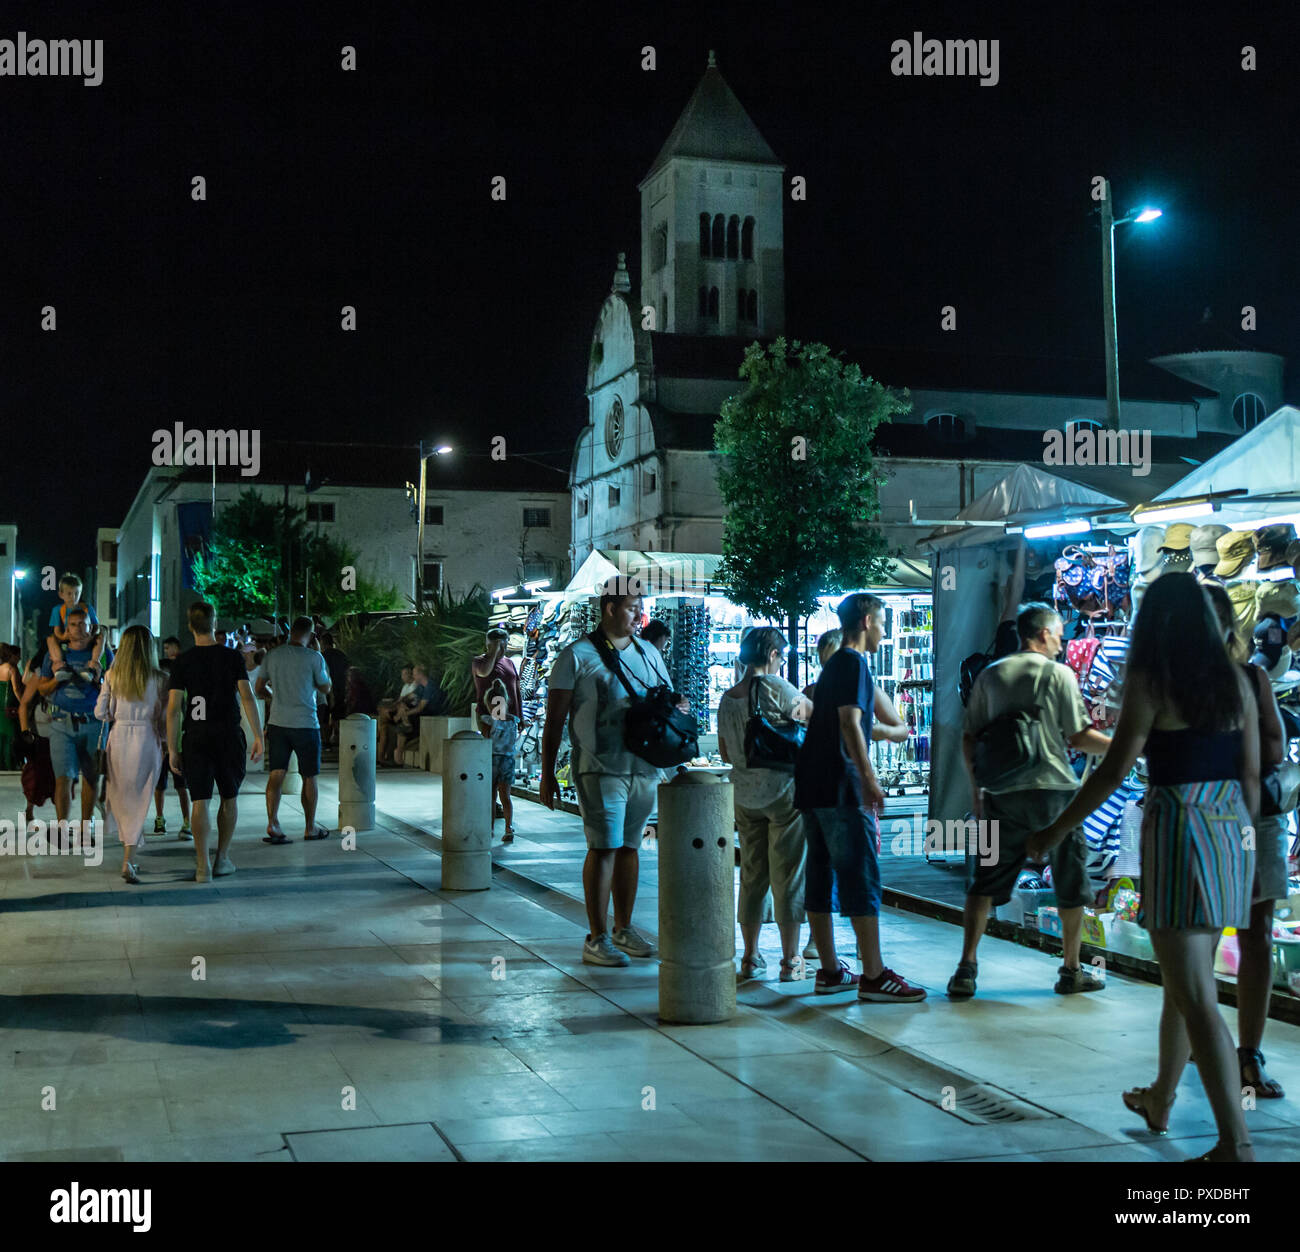 Zadar outdoor market and tourists in front of St Marys Church & benedictine monastry, Croatia 2018 - Stock Image